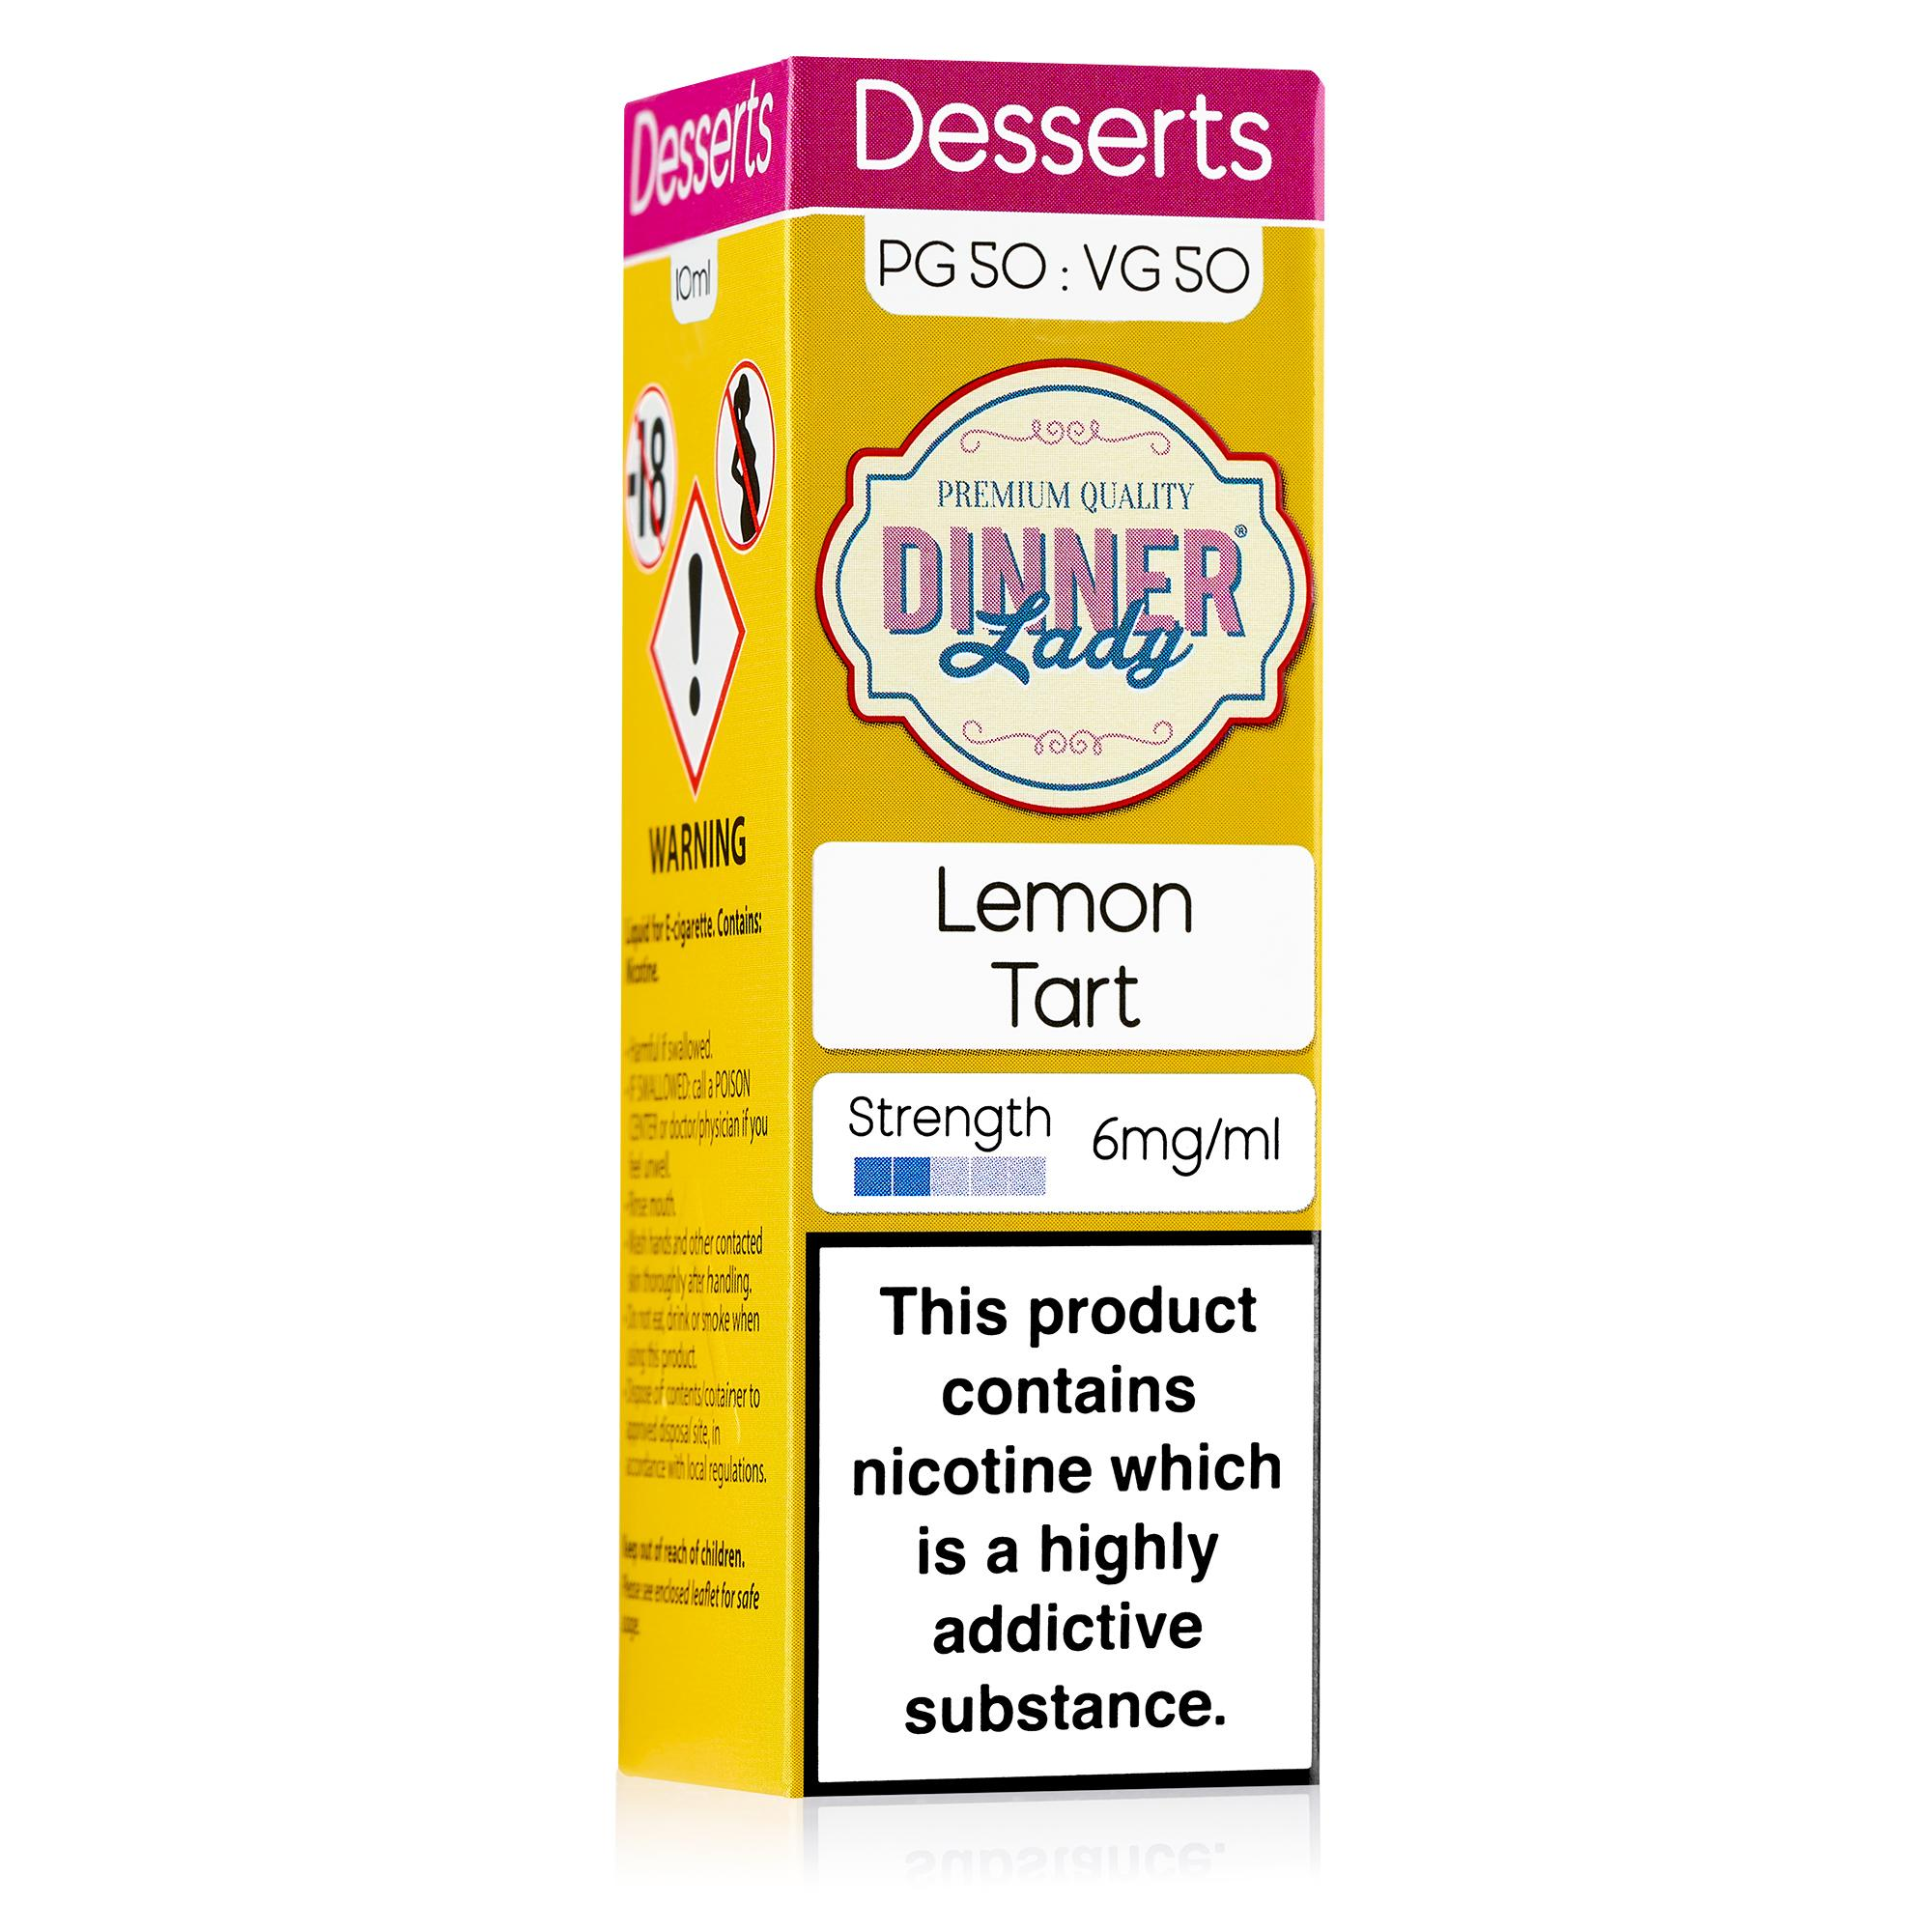 Dinner Lady 50:50 10ml Lemon Tart E-liquid - Packaging